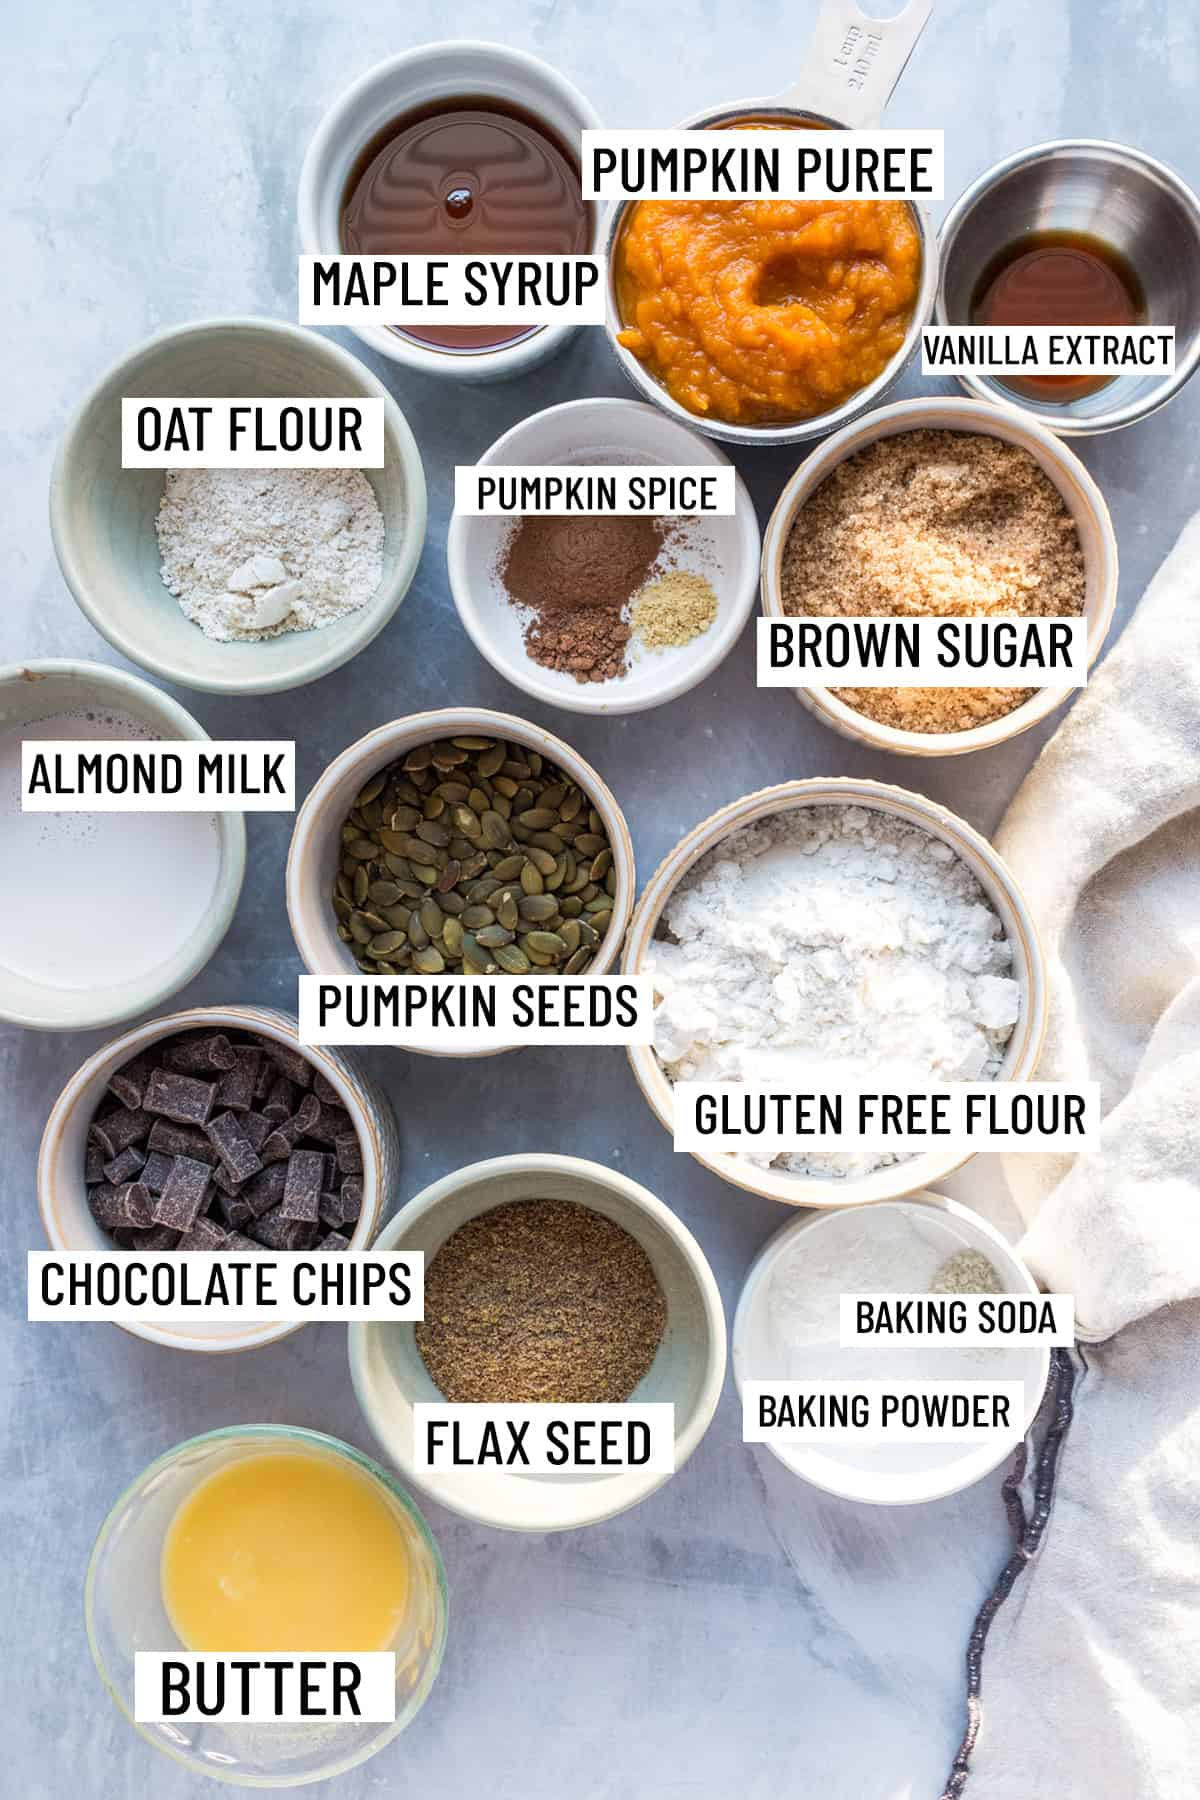 Birds eye view of all ingredients needed to make vegan pumpkin bread portioned into individual bowls and ramekins.